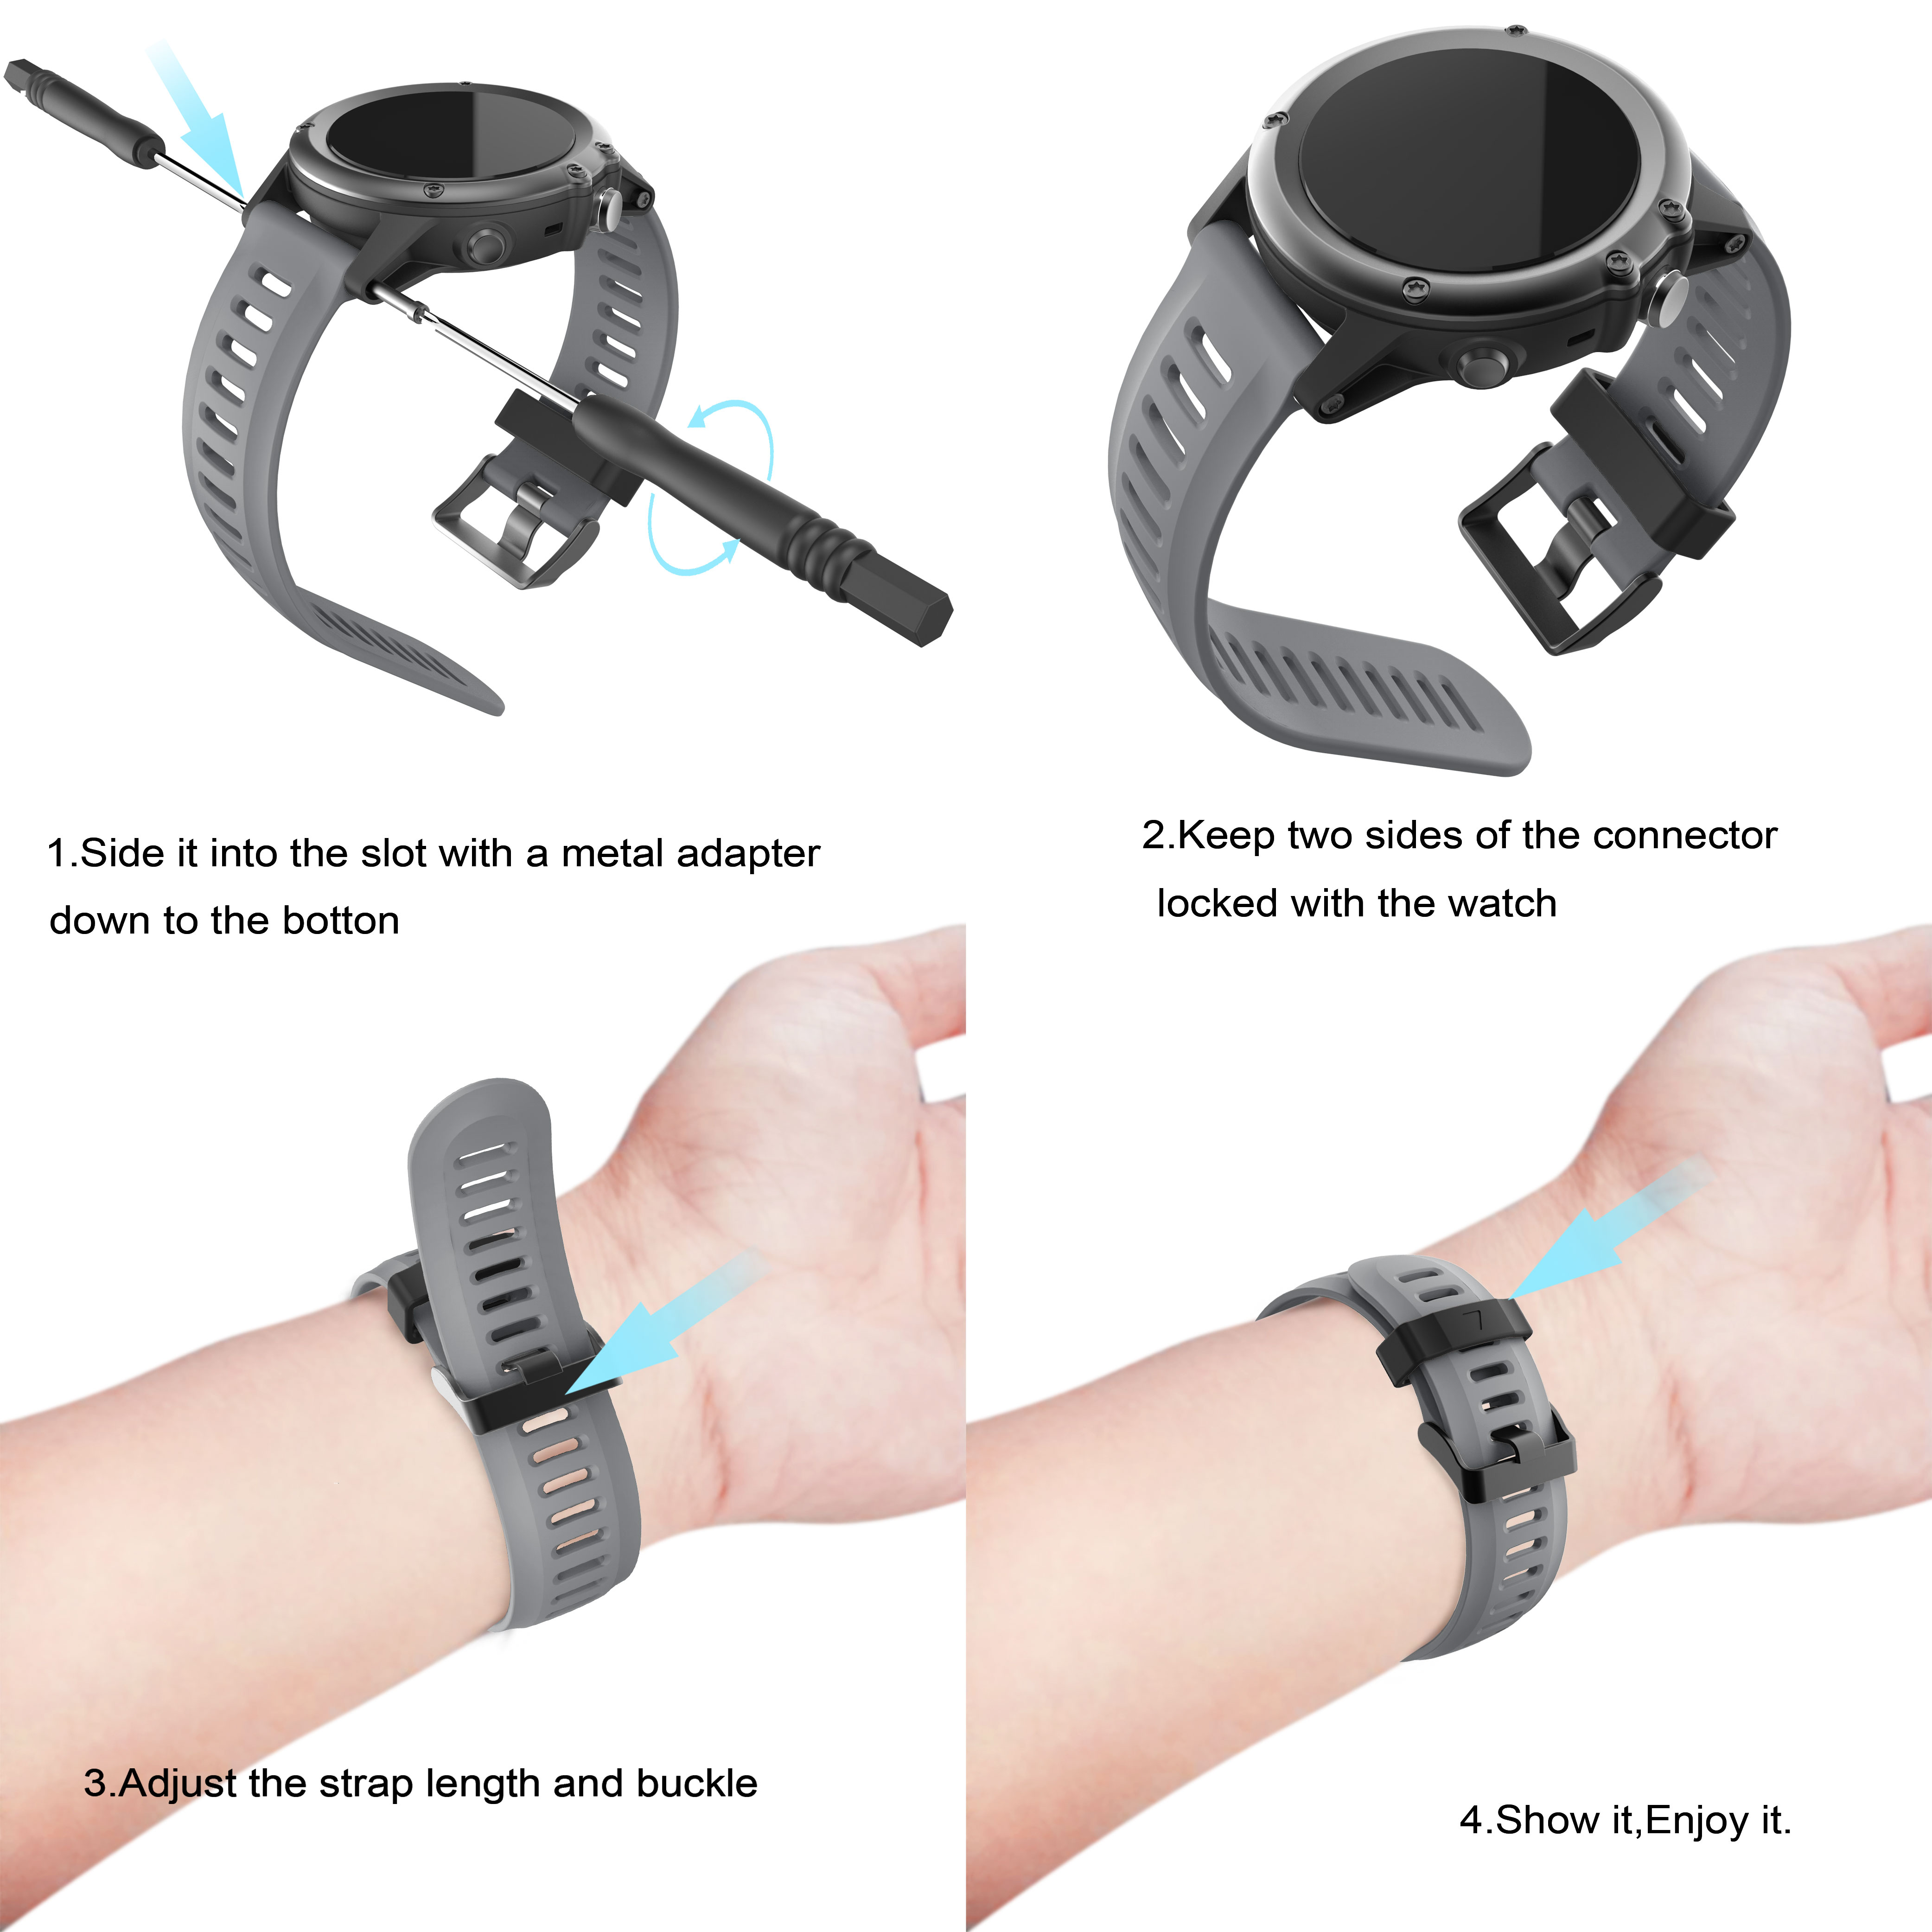 Image 5 - Yayuu Soft Silicone Replacement Watch Band with Tools for Garmin Fenix 3/Fenix 3 HR/Fenix 5X/5X Plus/D2 Delta PX/Descent MK1-in Smart Accessories from Consumer Electronics